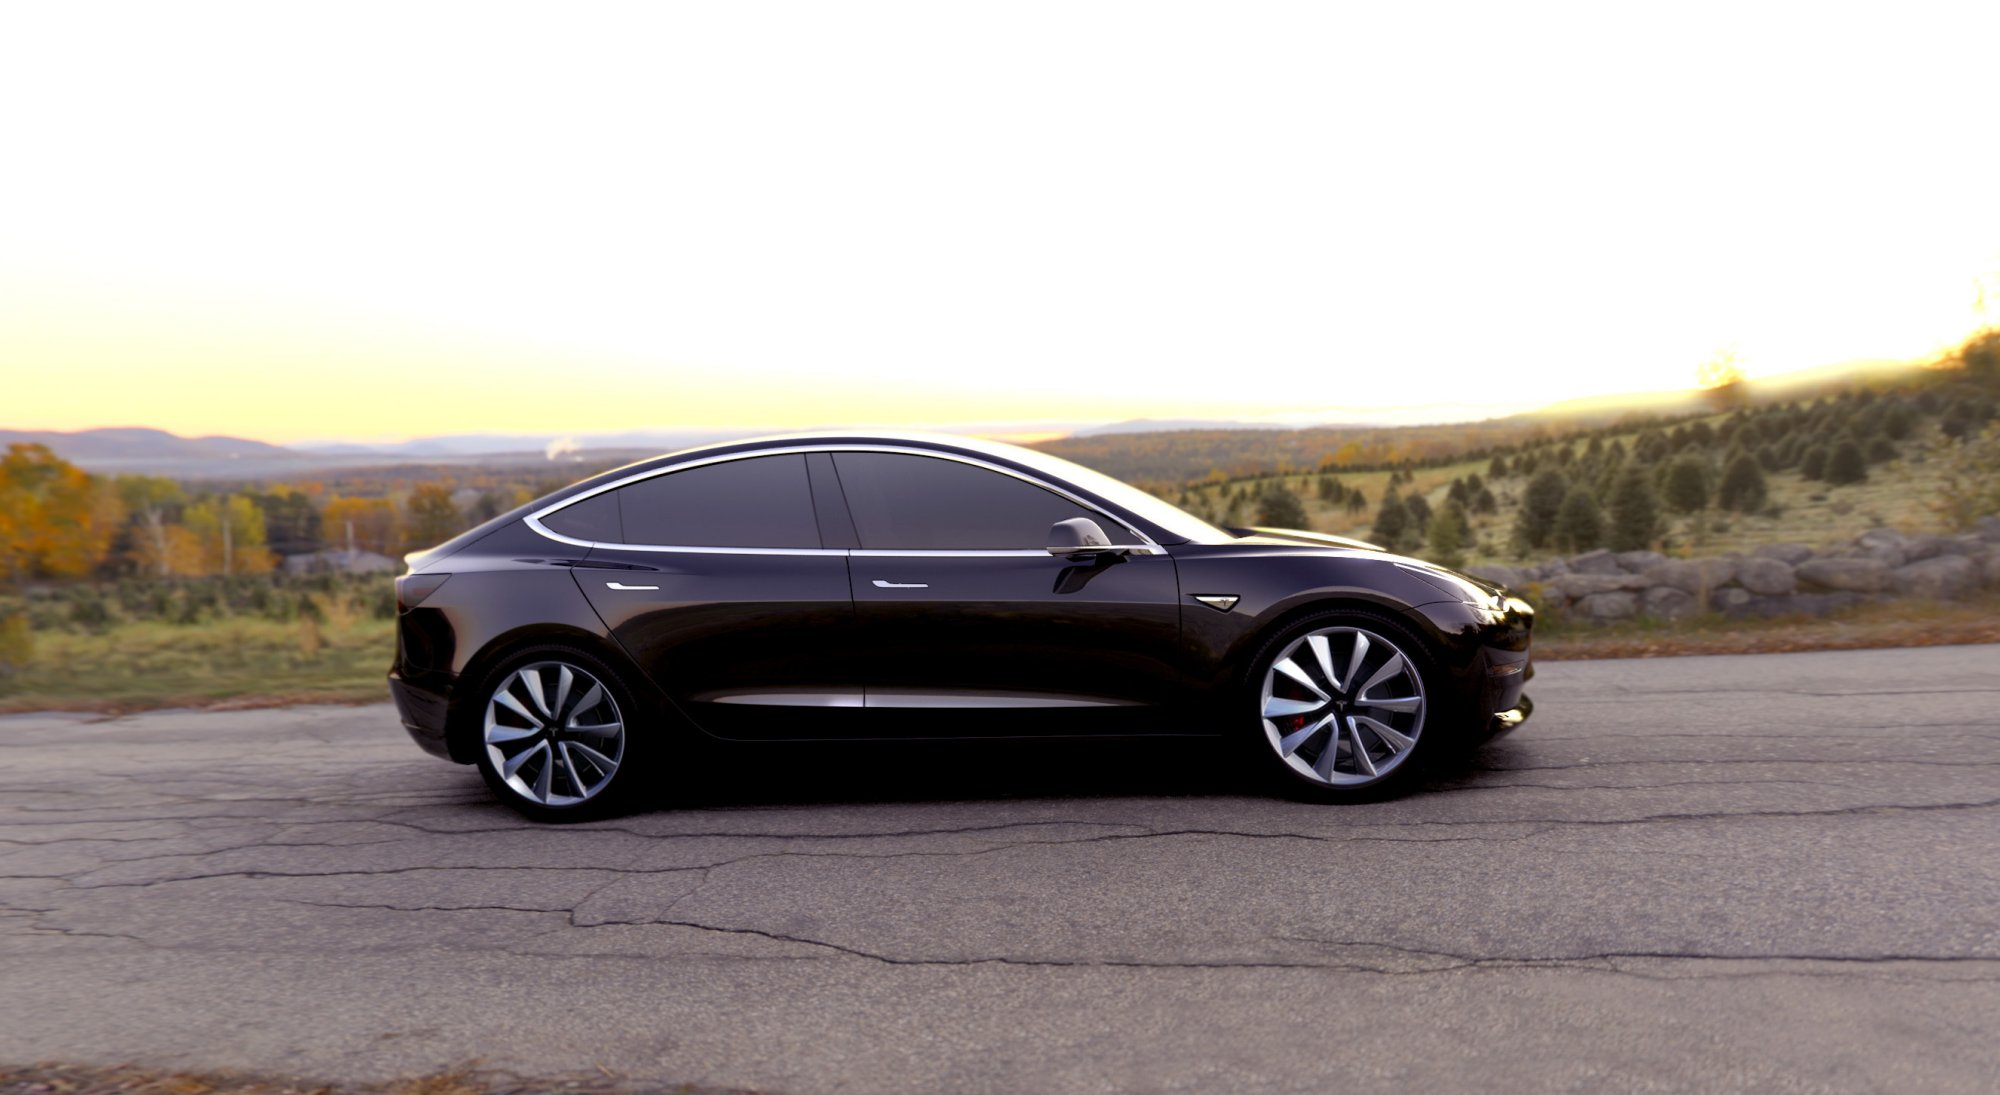 Aston Martin Bed >> News - Tesla Model 3 Almost Ready, Teased In Video